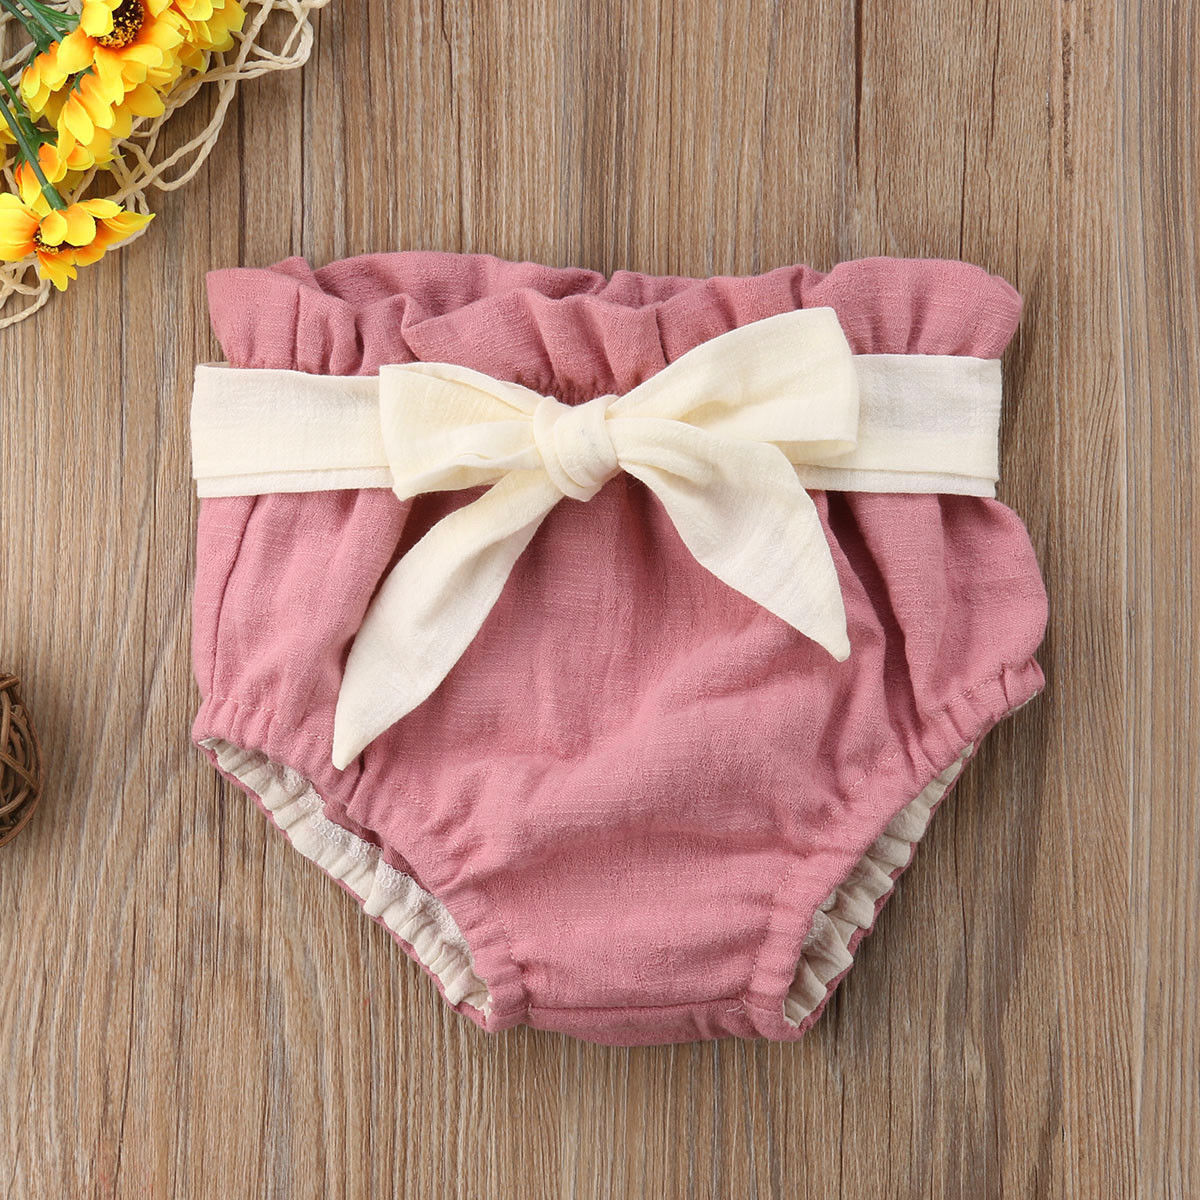 Pudcoco Girl Clothes Cotton Infant Baby Girl Boy Shorts PP Pants Nappy Diaper Covers Bowknot Bloomers